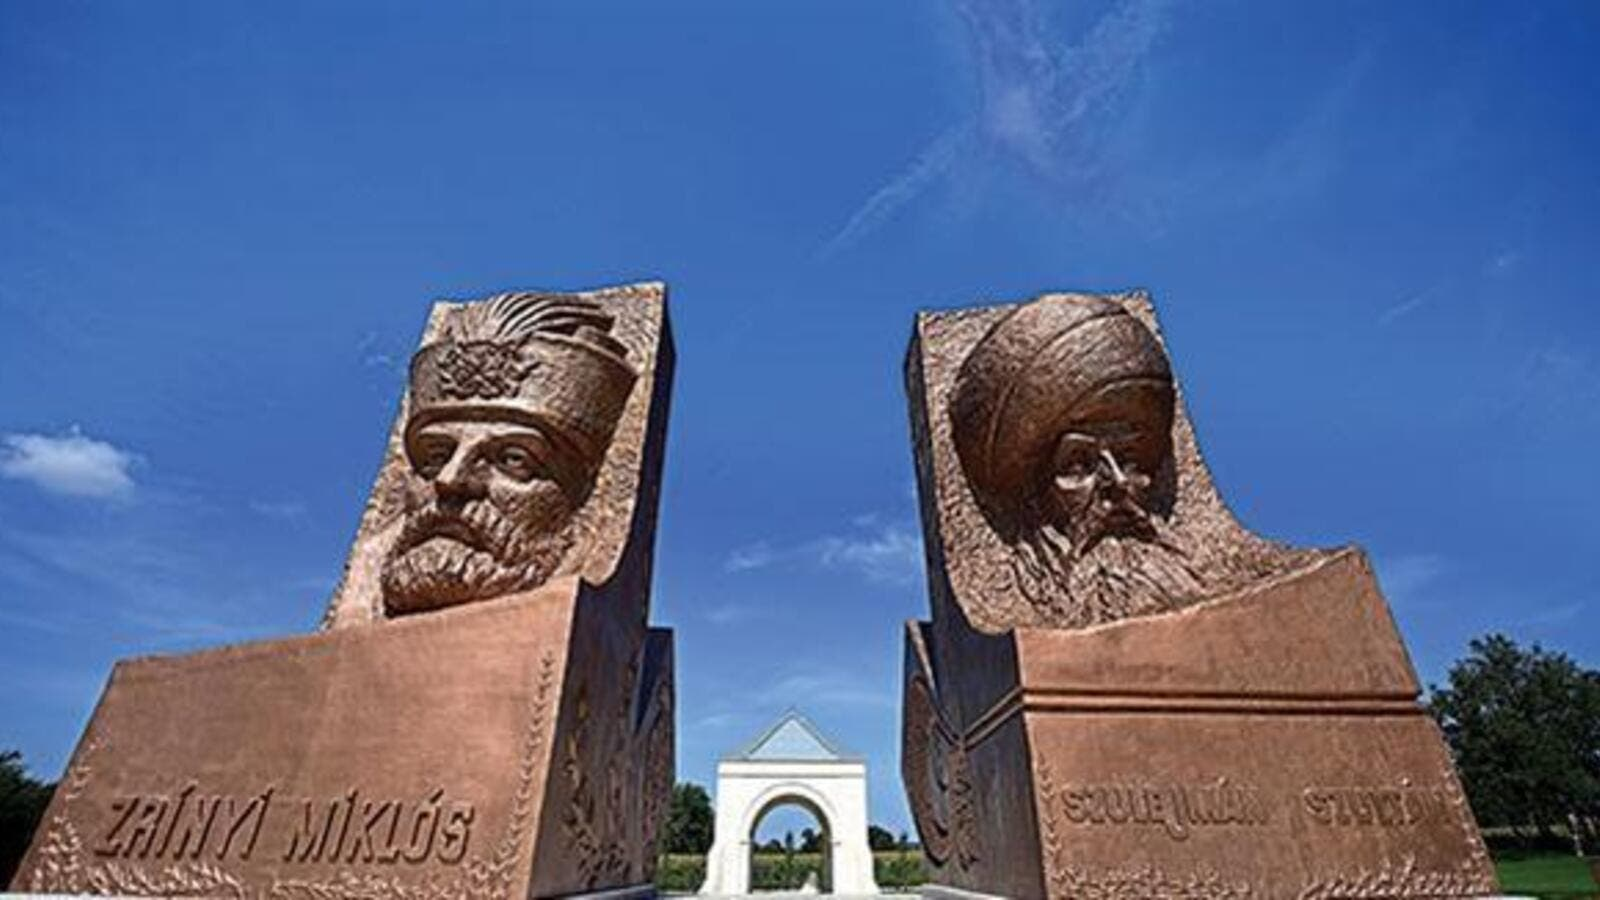 Statues of rival military leaders of 16th century, Ottoman Sultan Suleiman (R) and his opponent Miklos Zrinyi (L), are seen at the Hungarian-Turkish friendship park near Szigetvar. (AFP)